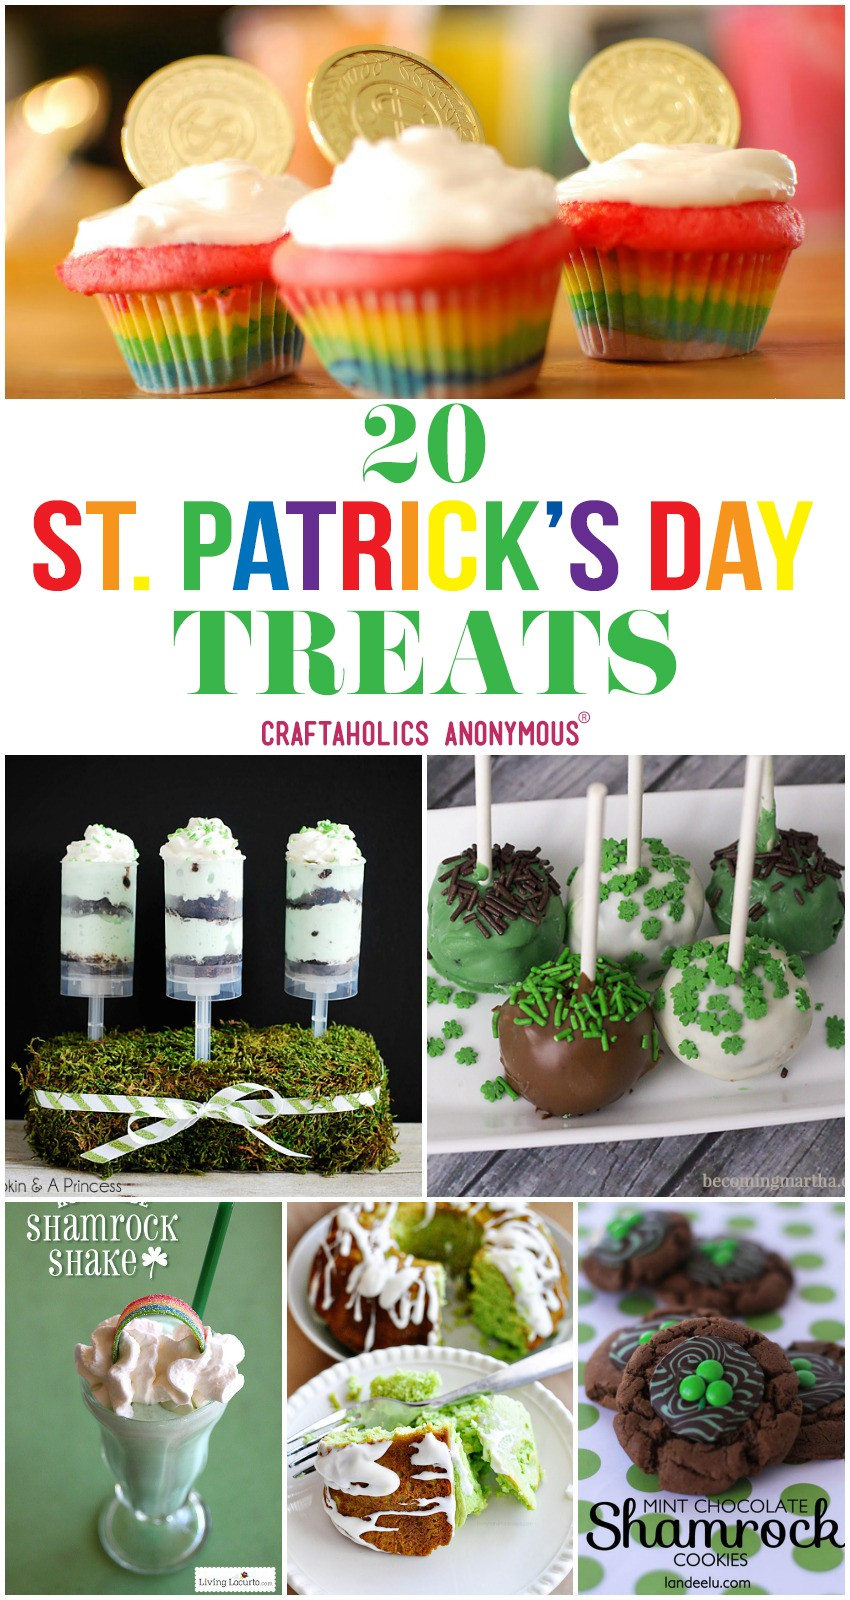 20 St. Patrick's Day Treats from CraftaholicsAnonymous.net